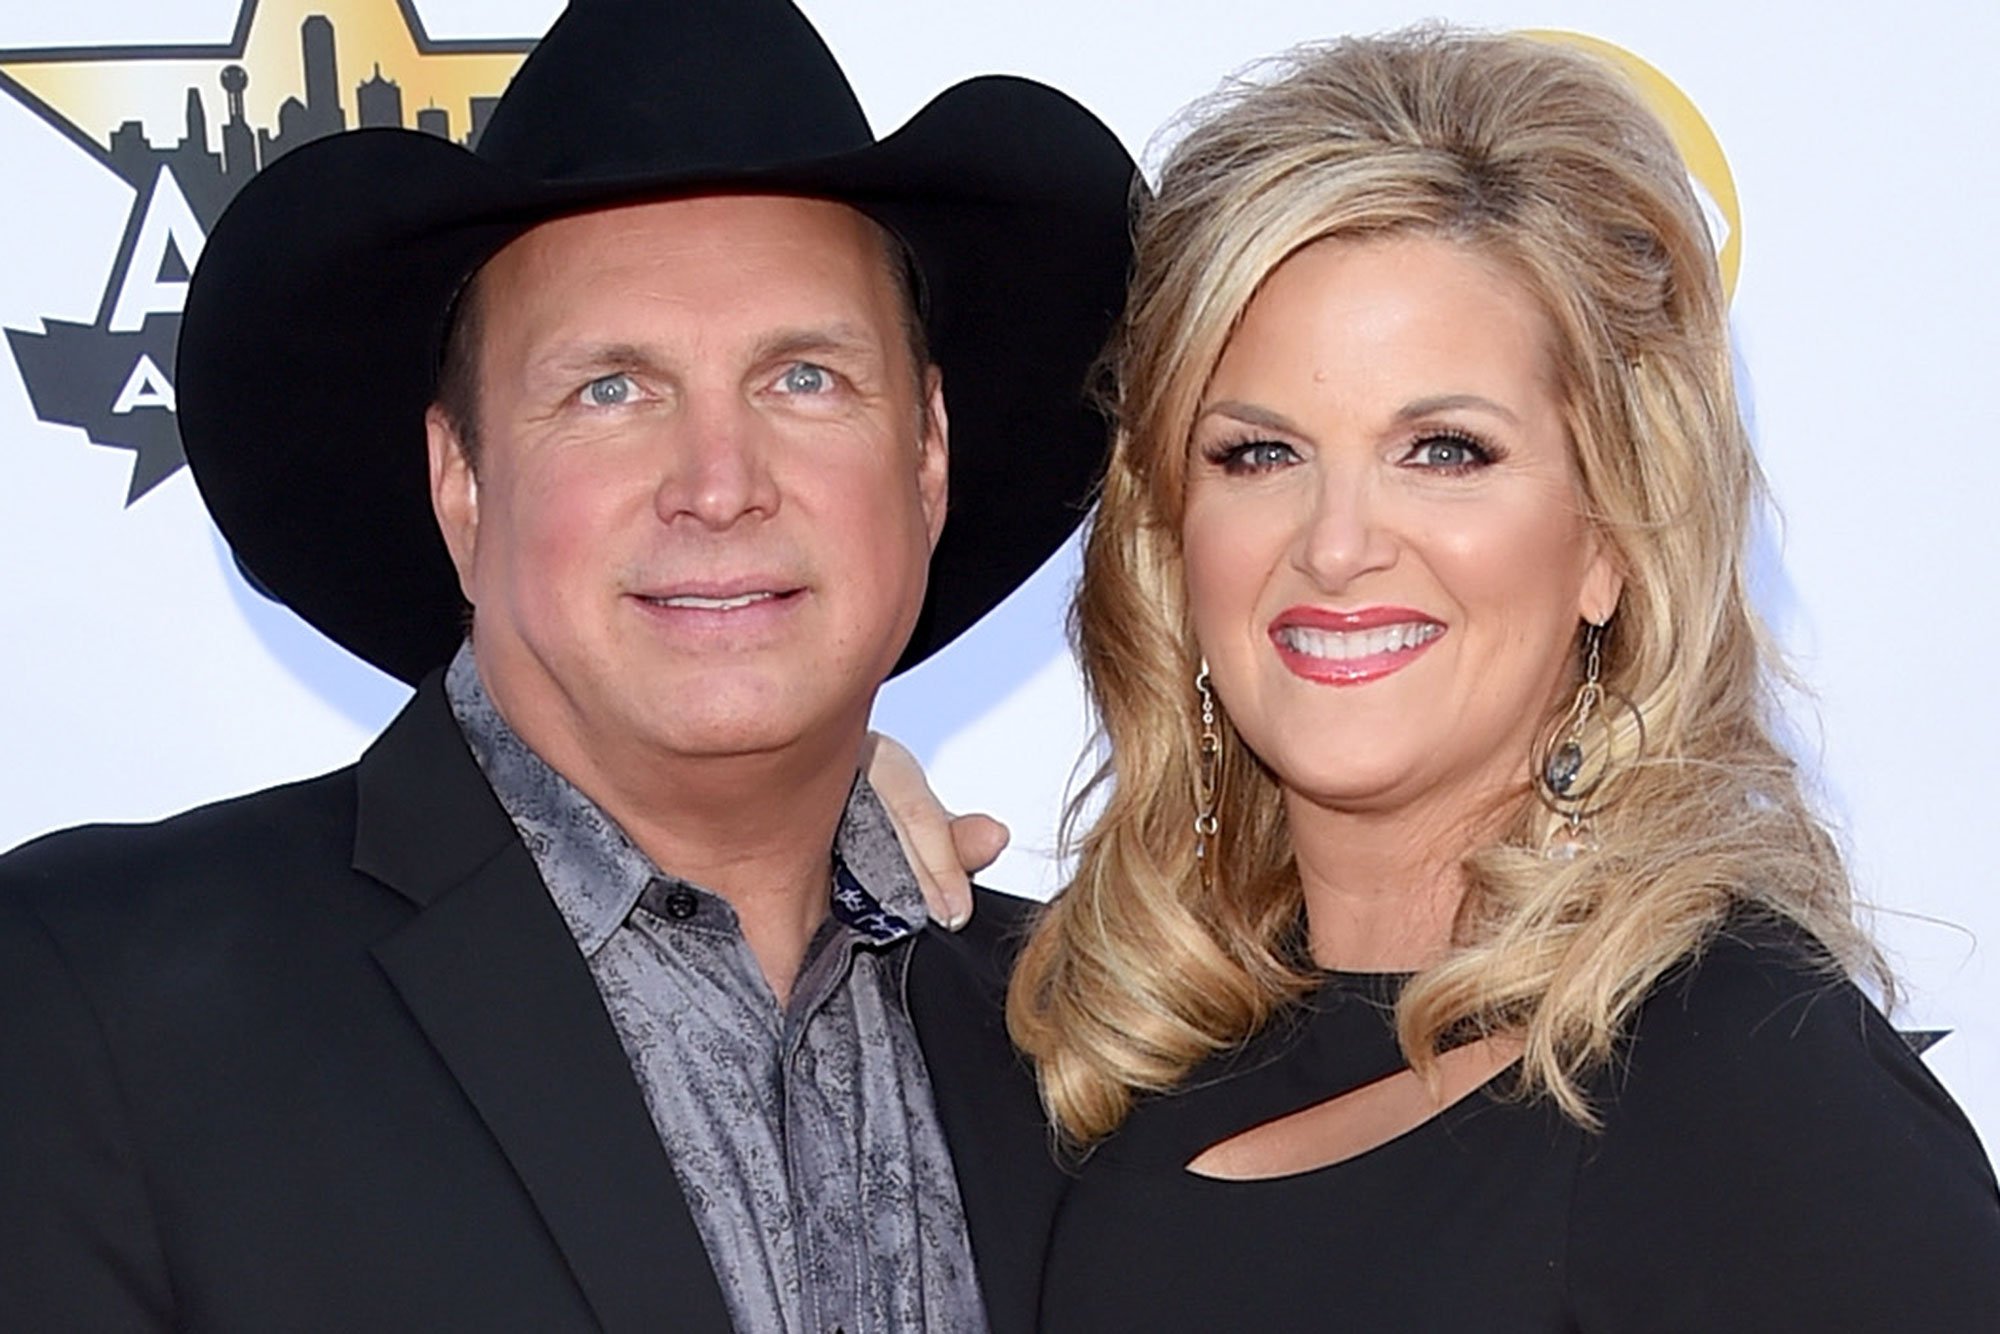 Garth Brooks Invites Honeymooning Fans to His Home for Dinner Cooked by Wife Trisha Yearwood